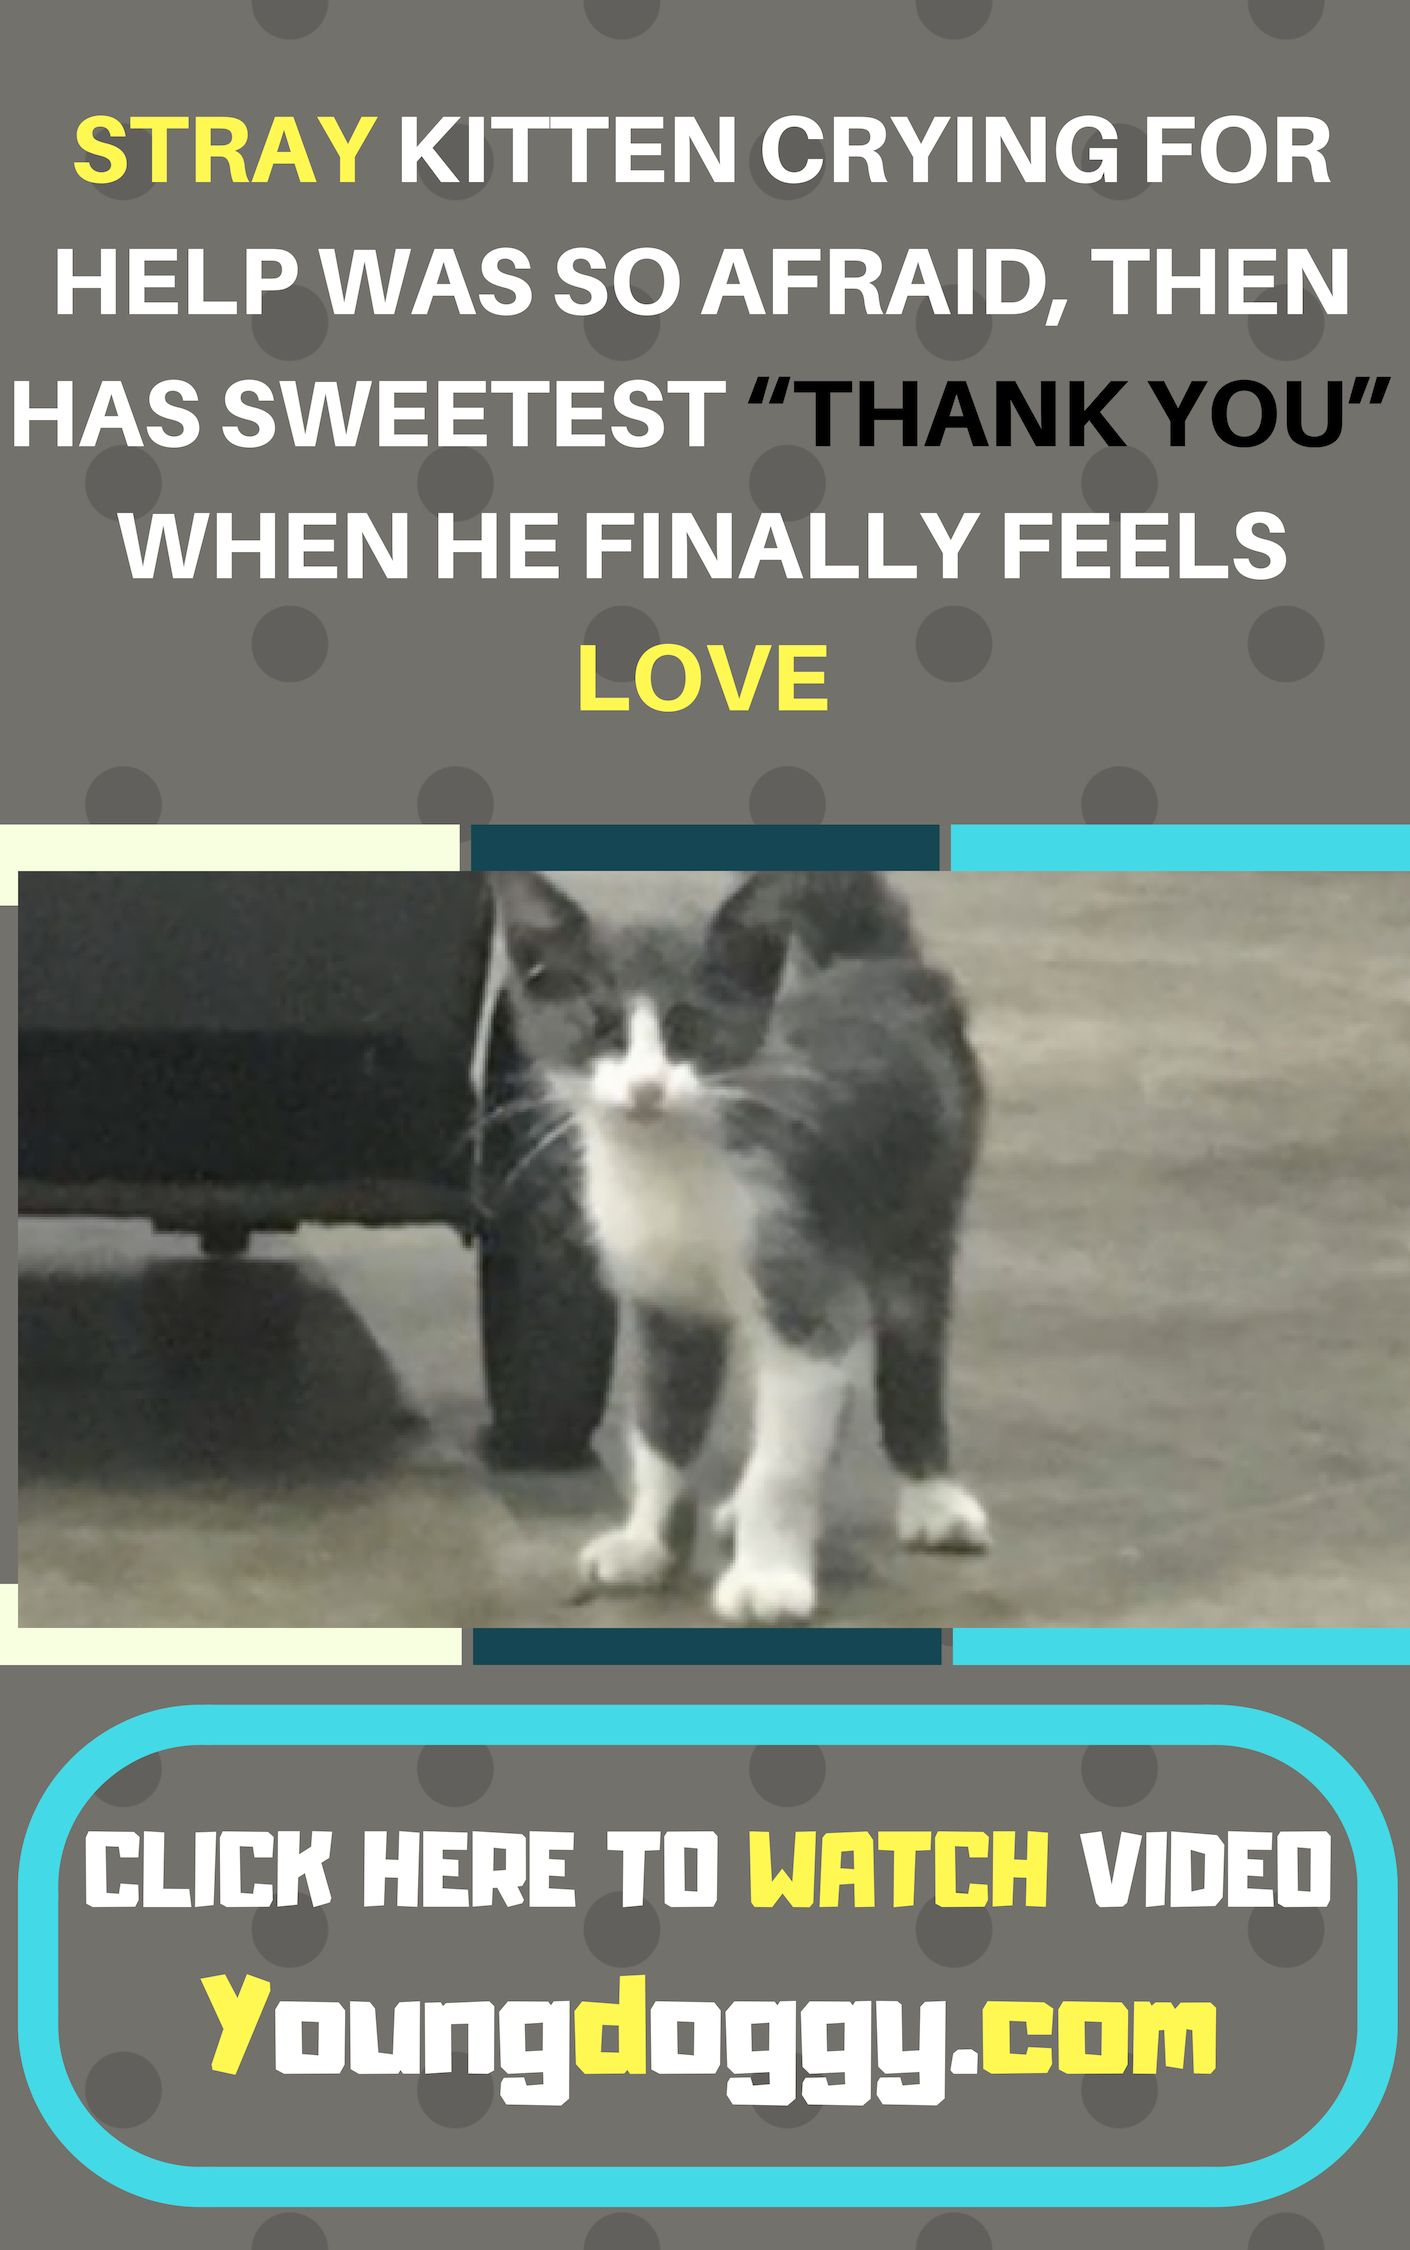 Stray Kitten Crying For Help Was So Afraid Then Has Sweetest Thank You When He Finally Feels Love Kitten Rescue Cat Rescue Cat Rescue Stories